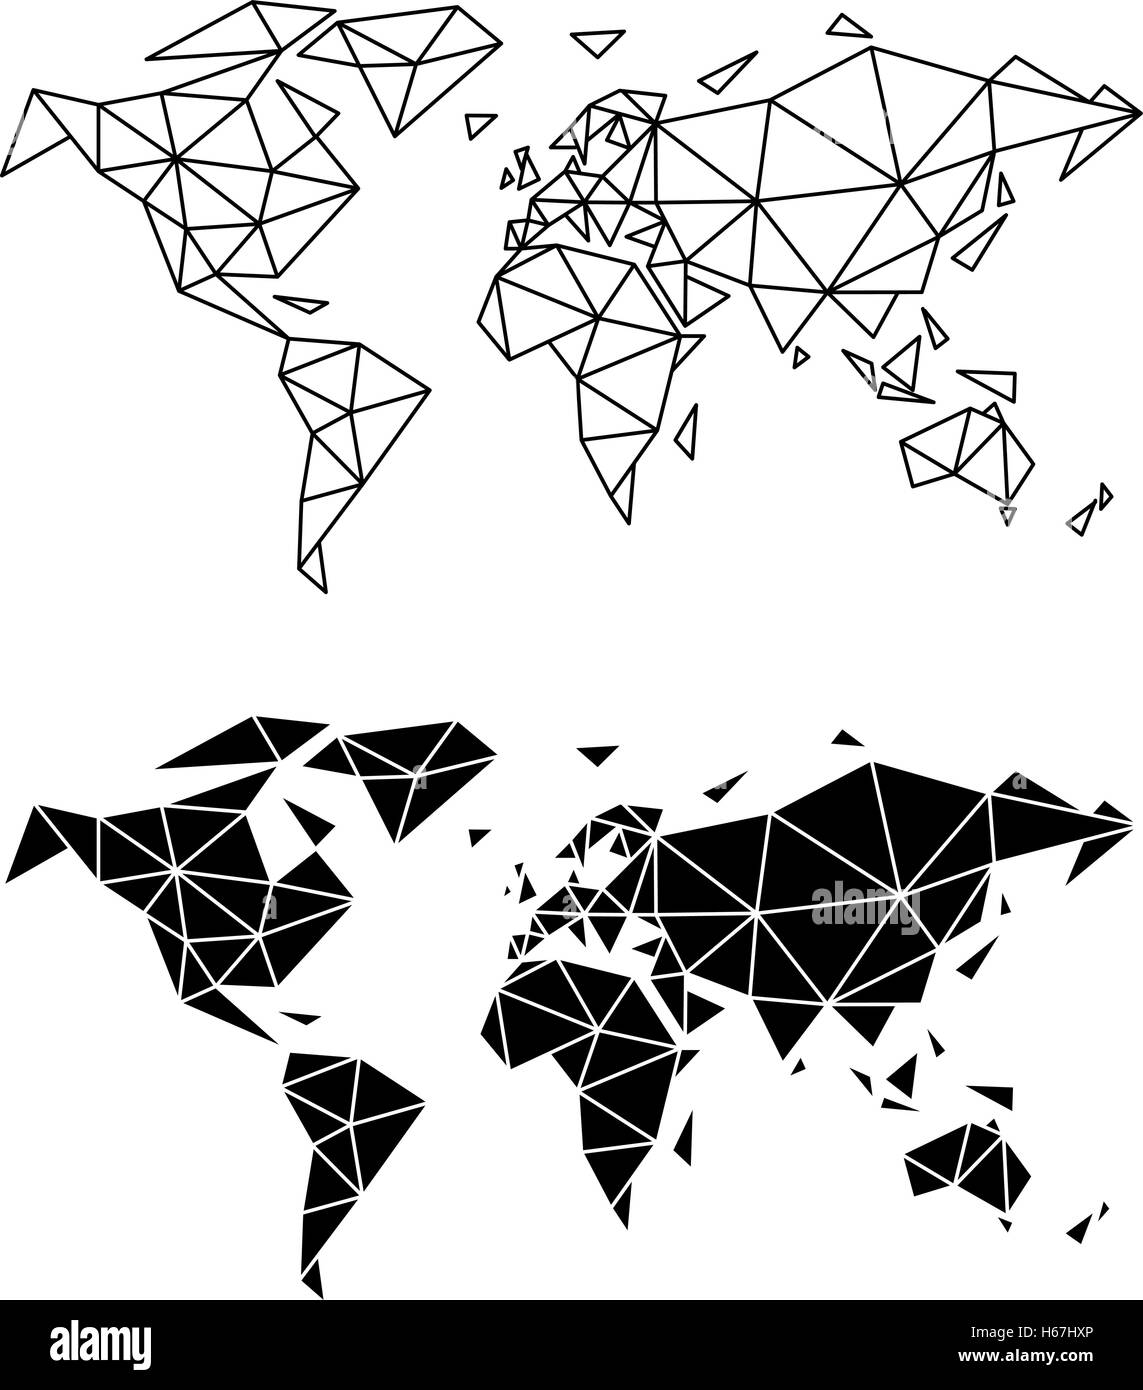 Annabella 67 Art Line Design : World map line art design templates